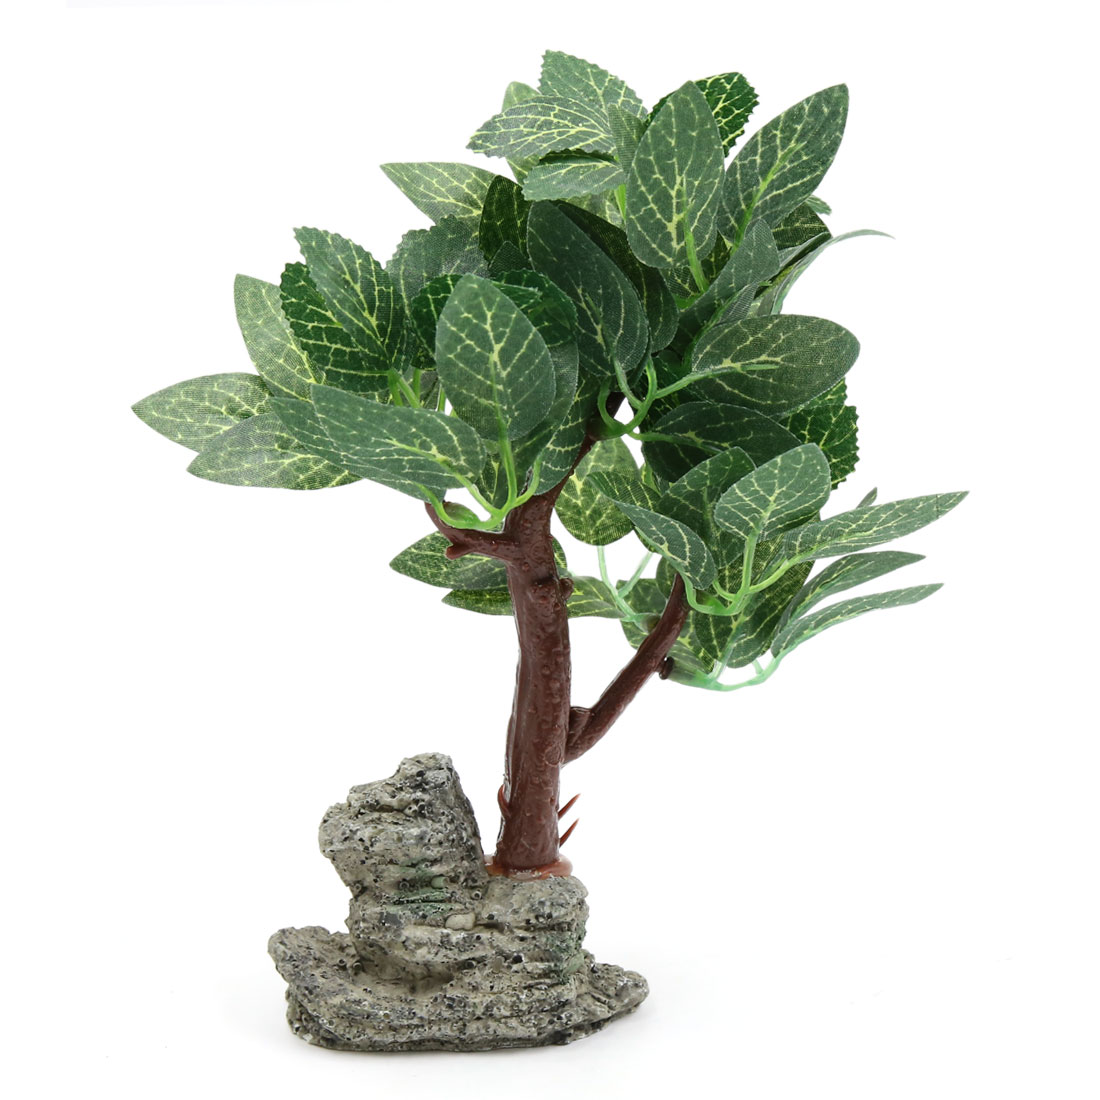 Lifelike Plants Green Plastic Lifelike Plant Aquarium Fishbowl Landscape